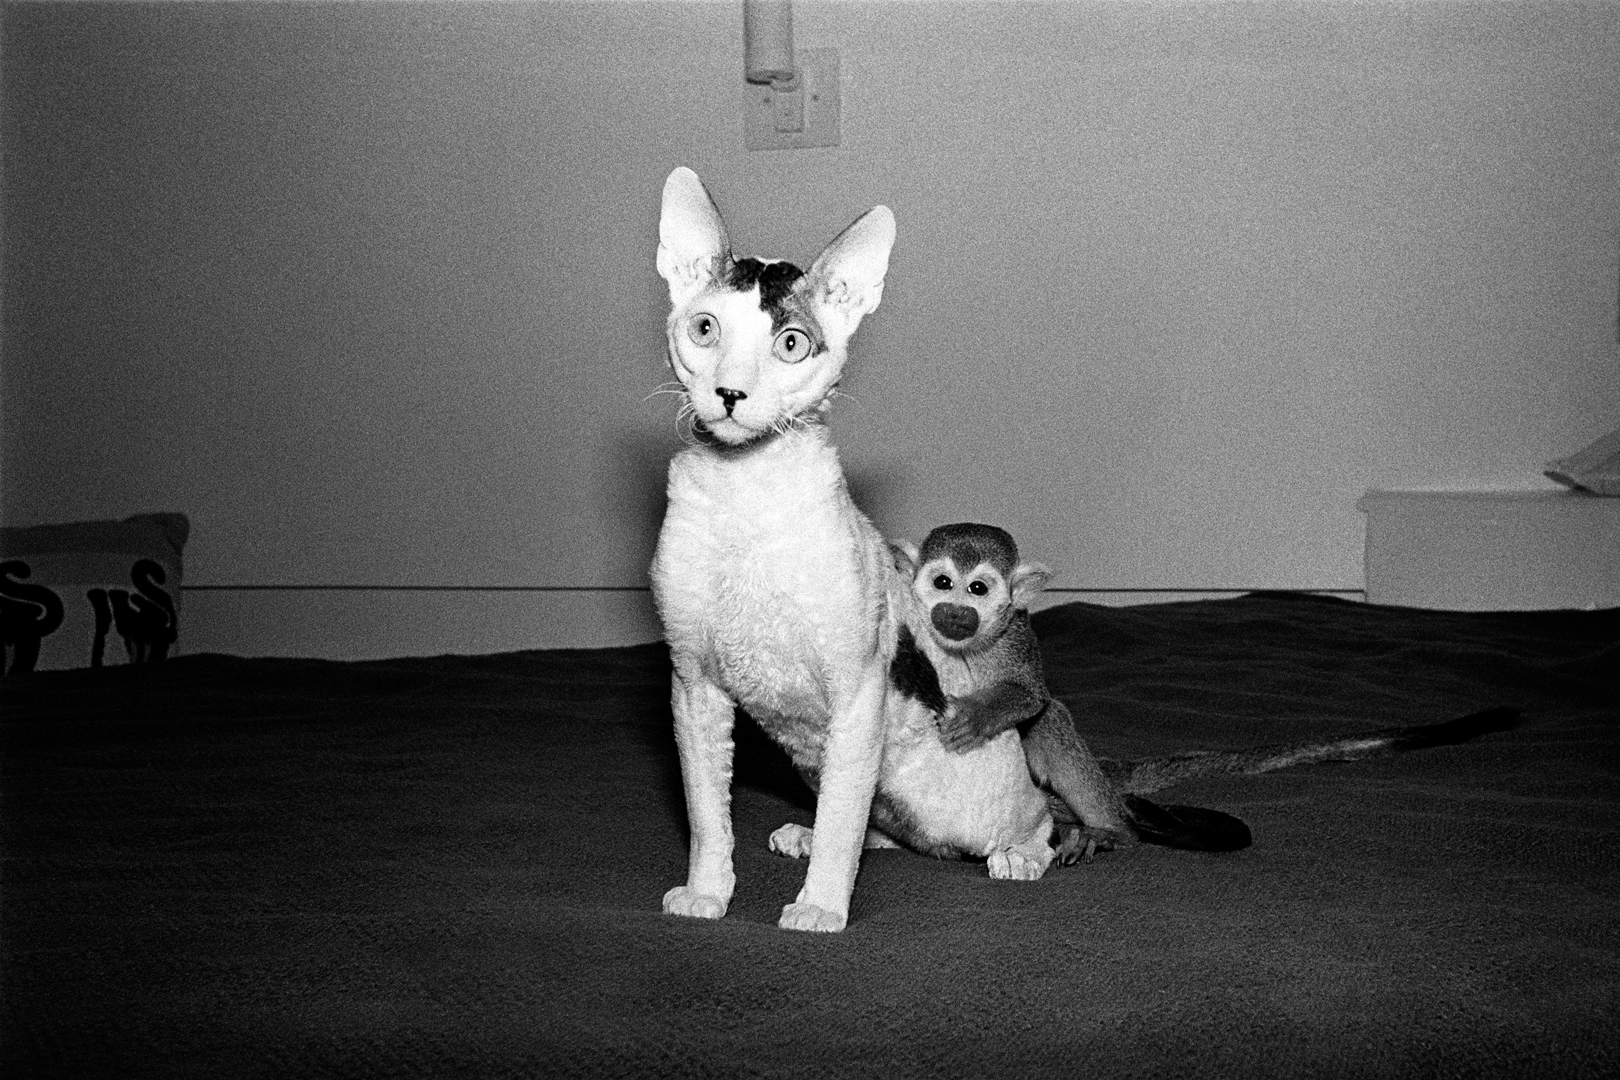 Wally and Spot, 1992. Squirrel monkey, male. 3 years old; and a Cornish rex kitten, male, 7 months old.